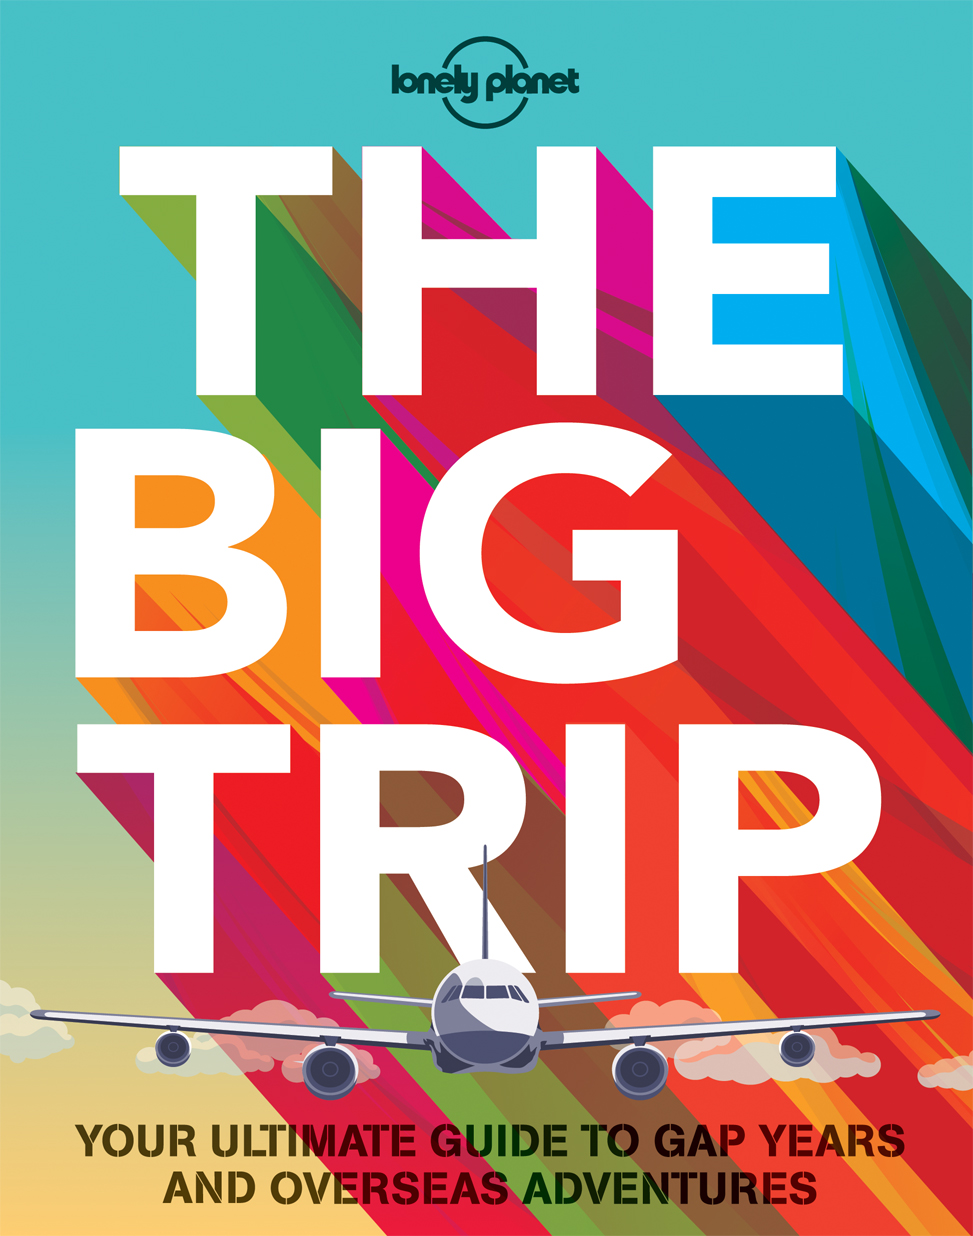 Lonely Planet - The Big Trip Book Review